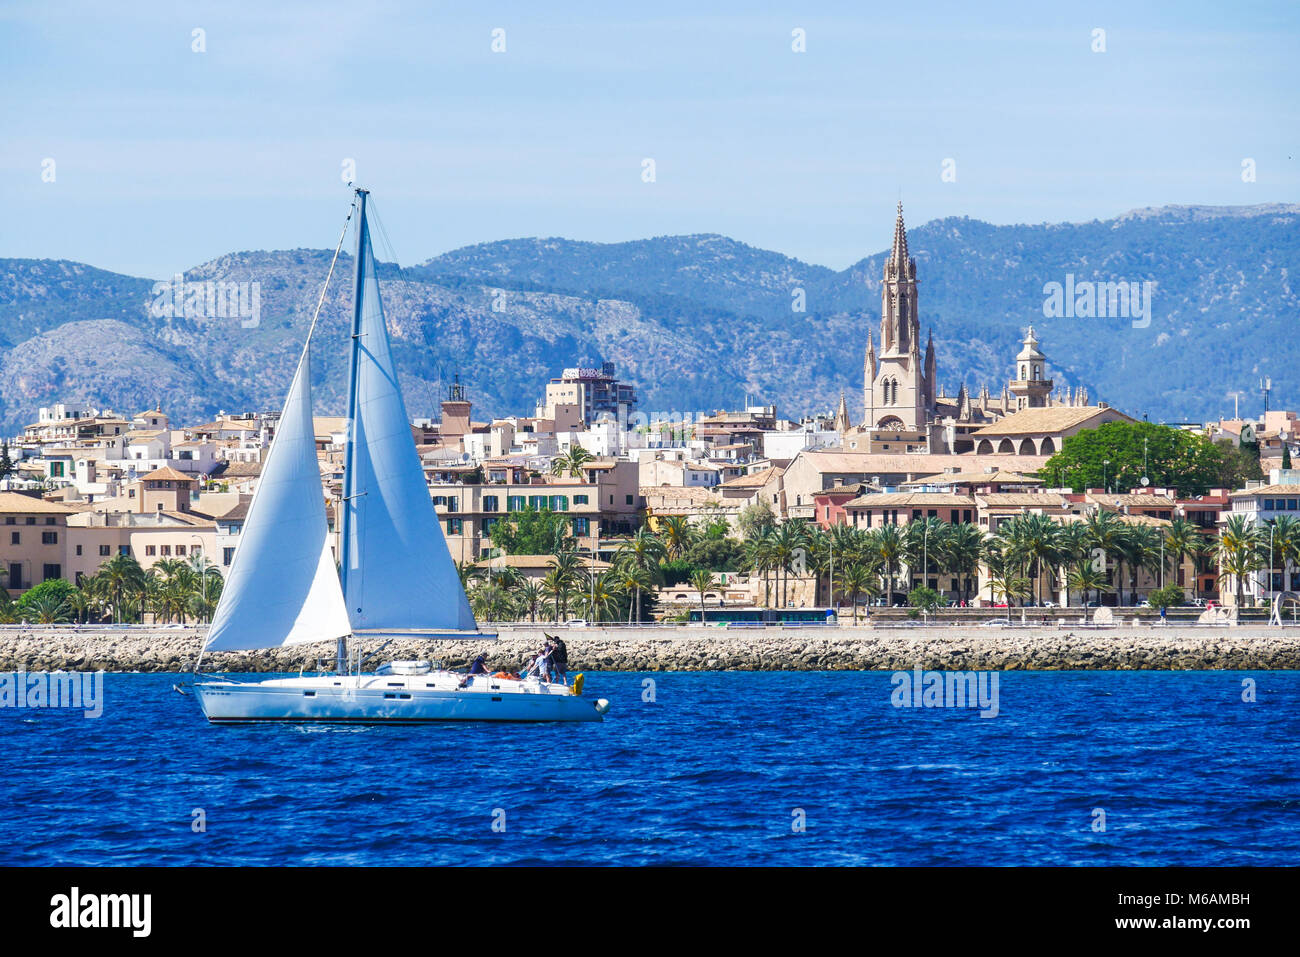 Palma de Mallorca, Spain. View from the sea with boath on a hot summer day. - Stock Image